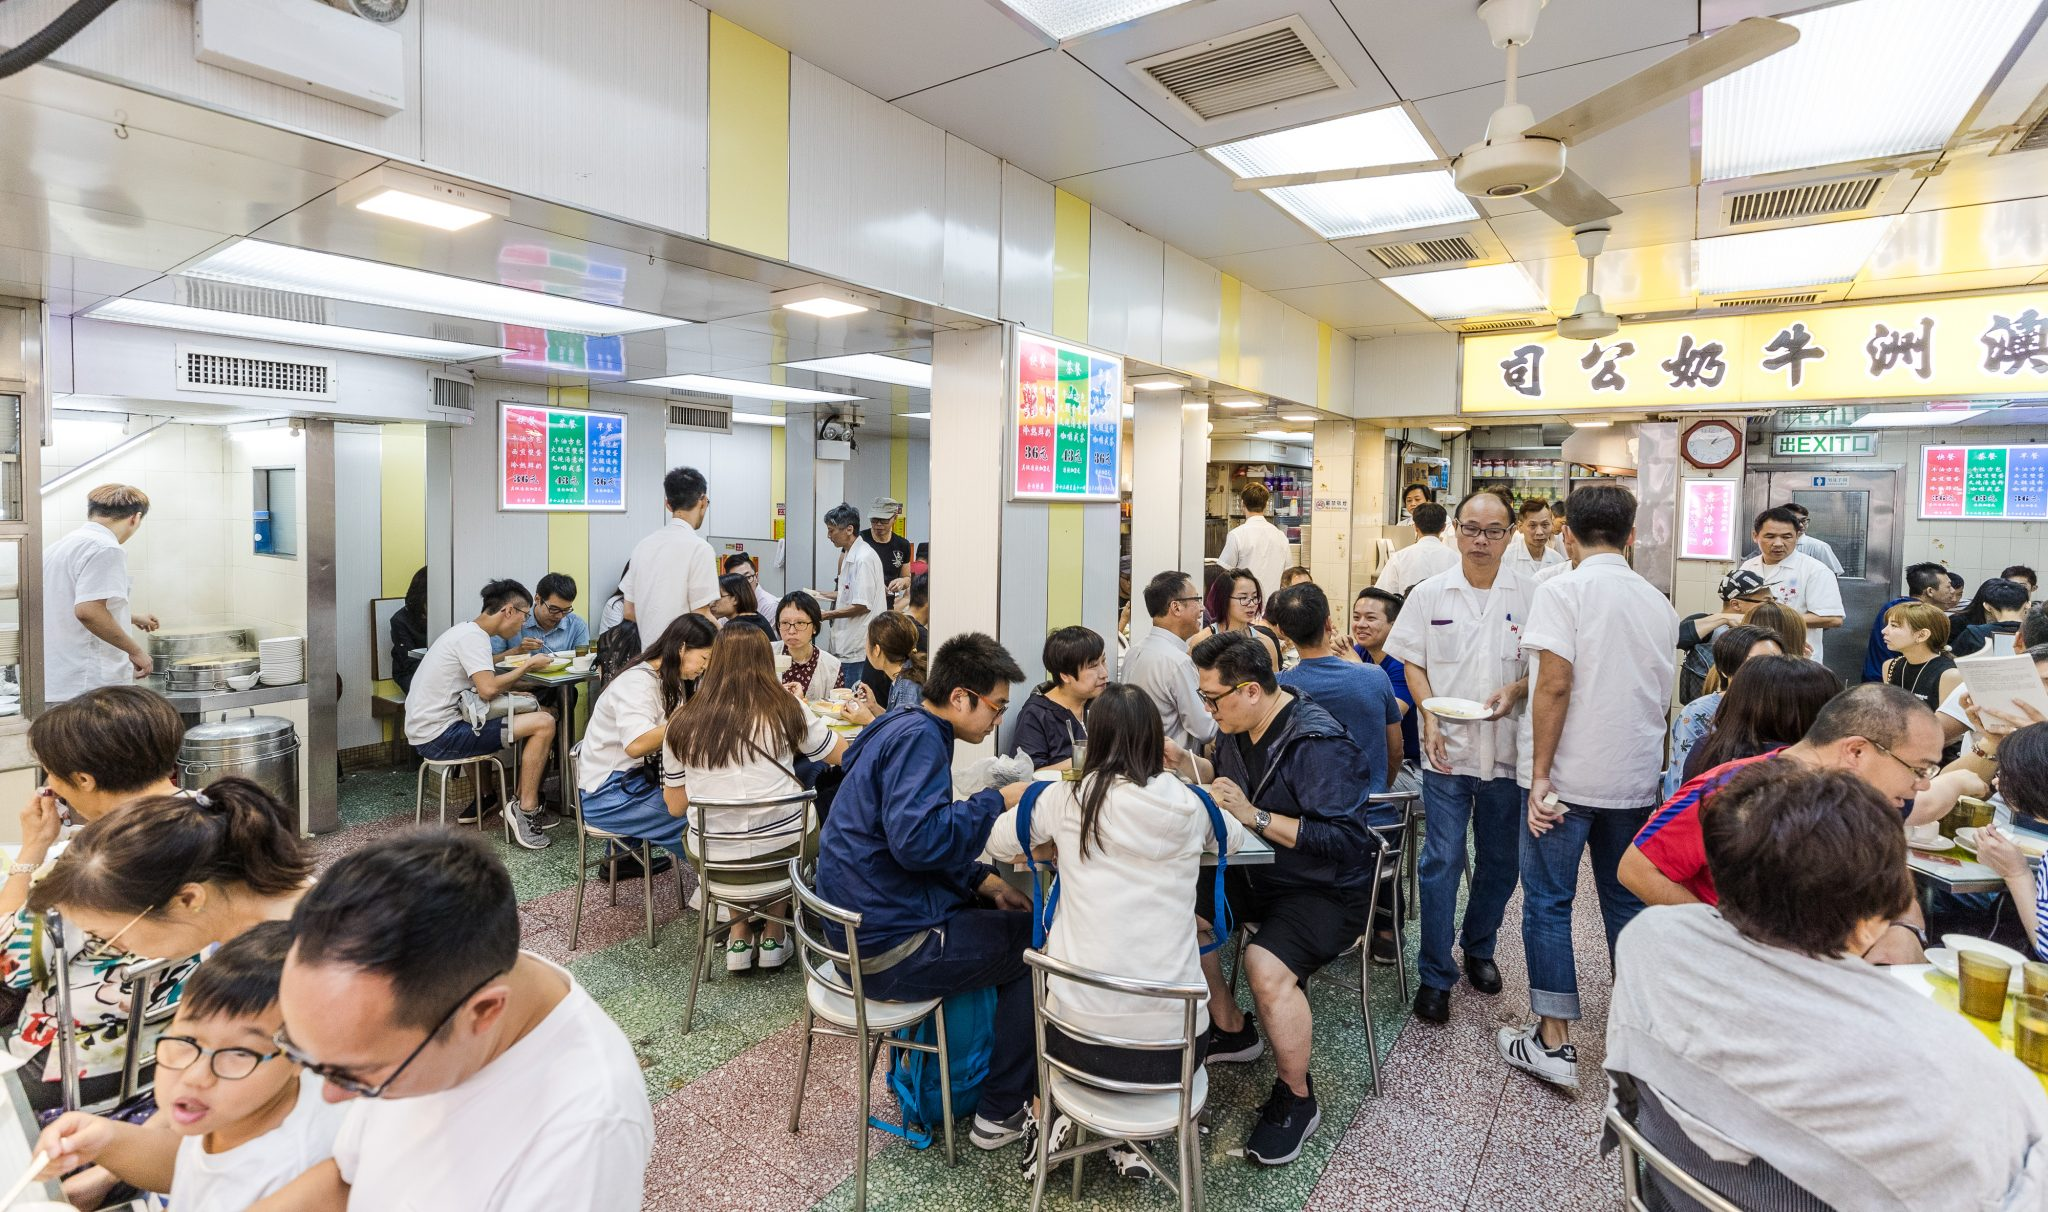 The dining room of Australia Dairy Company, where customers squeeze into small booths and around tables for soup, egg sandwiches and steamed milk pudding. Photo by Stan Lee